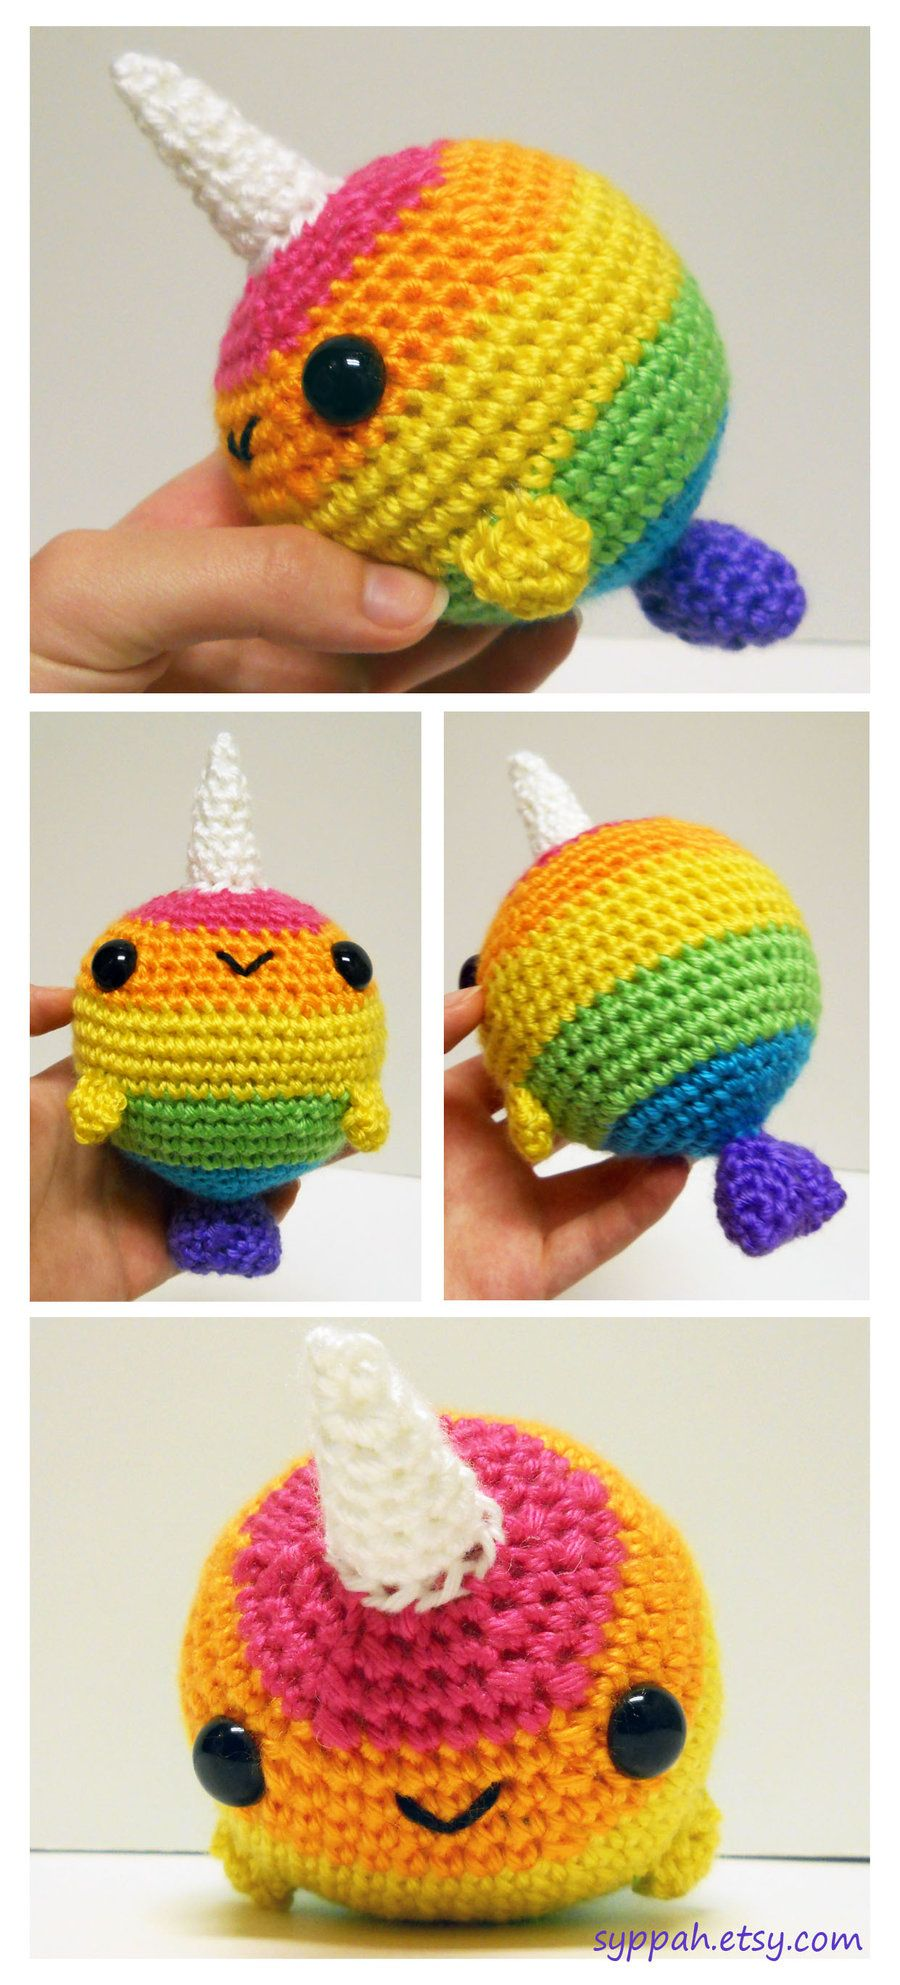 rainbow narwhal made me think we could do a